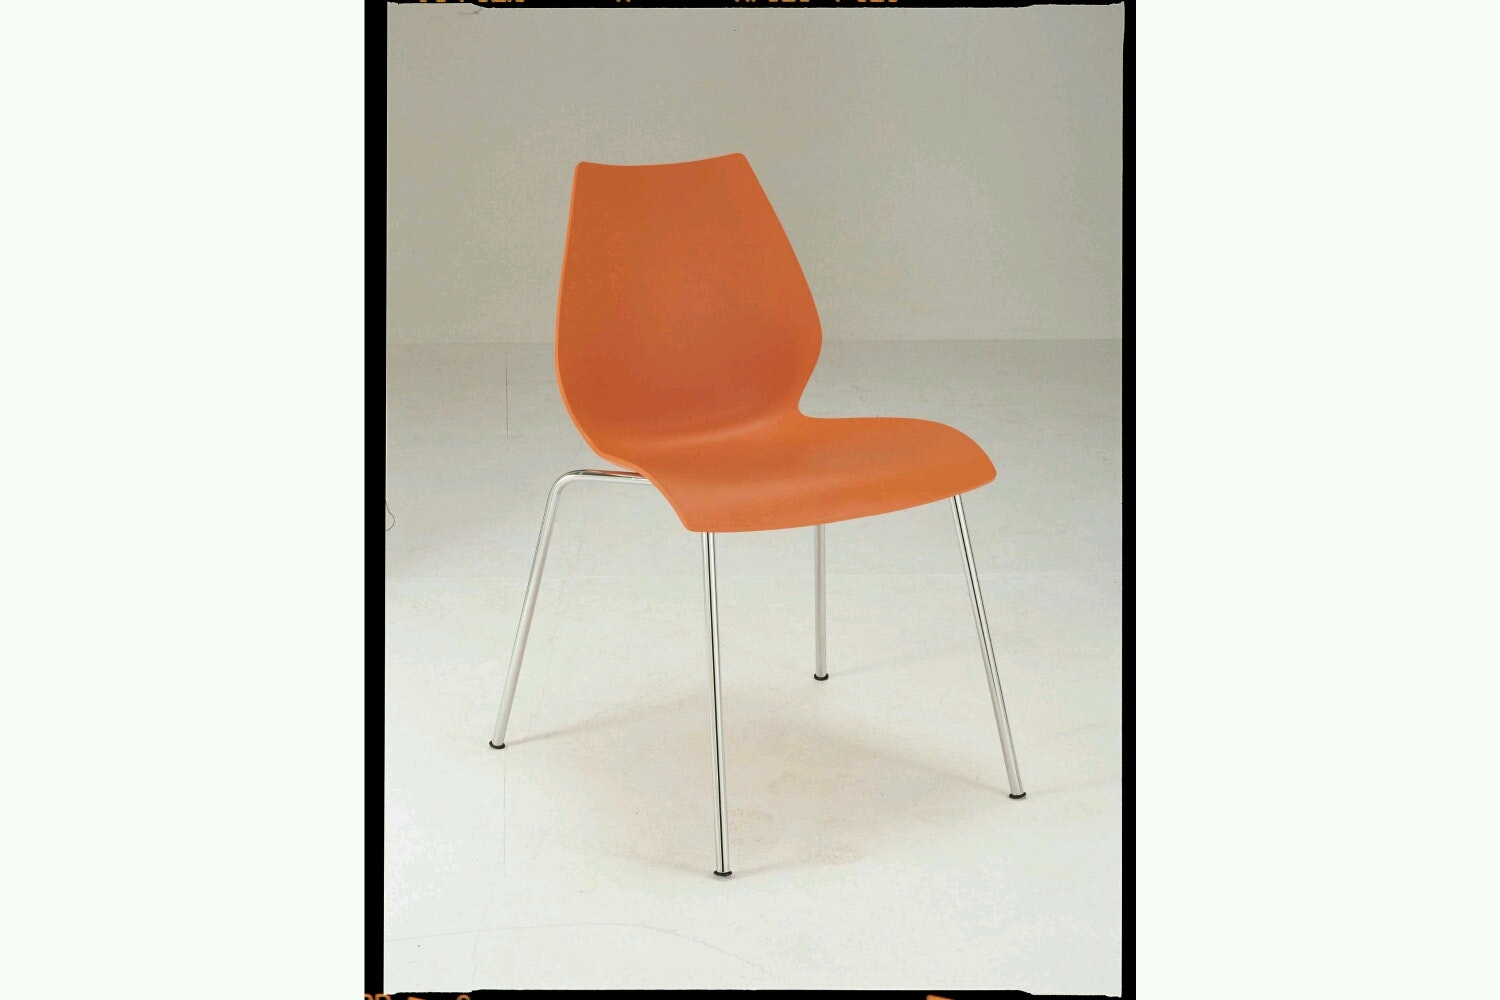 Maui Chair by Vico Magistretti for Kartell